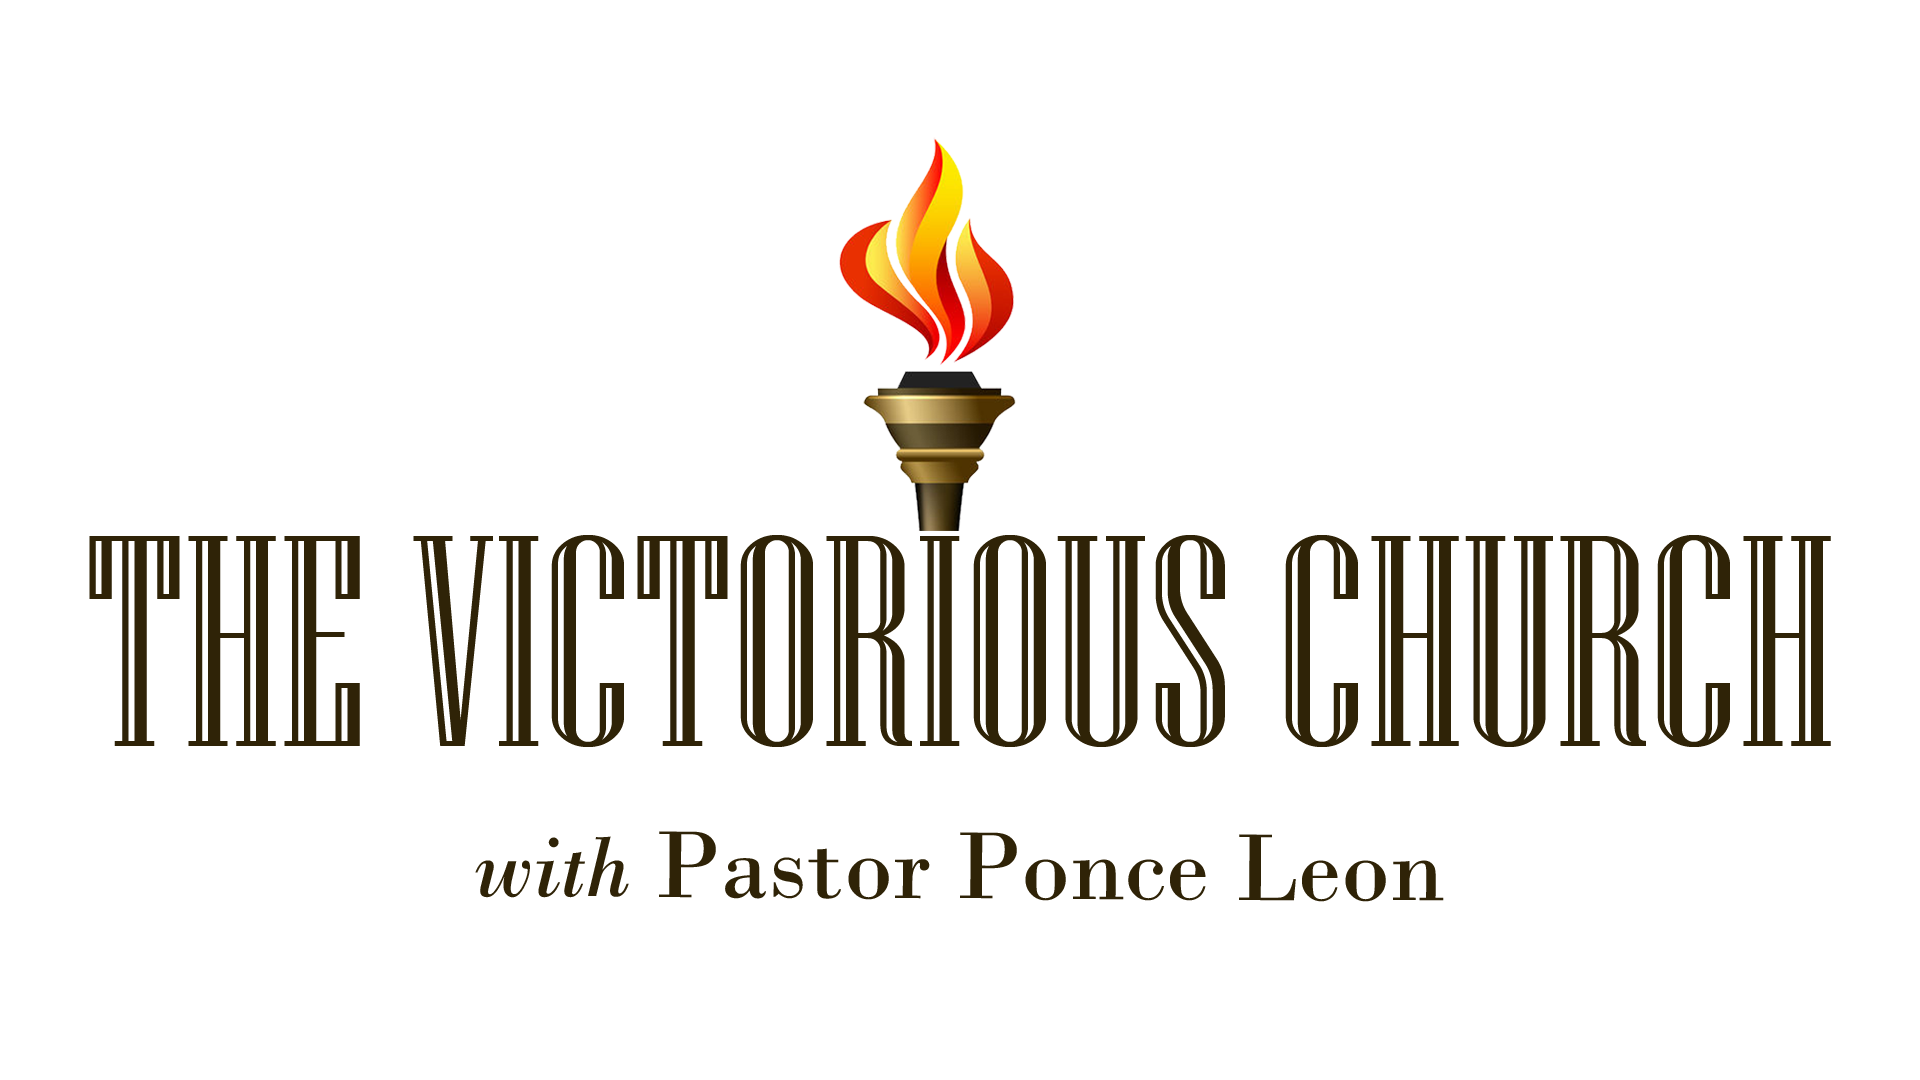 The Victorious Church Television Program